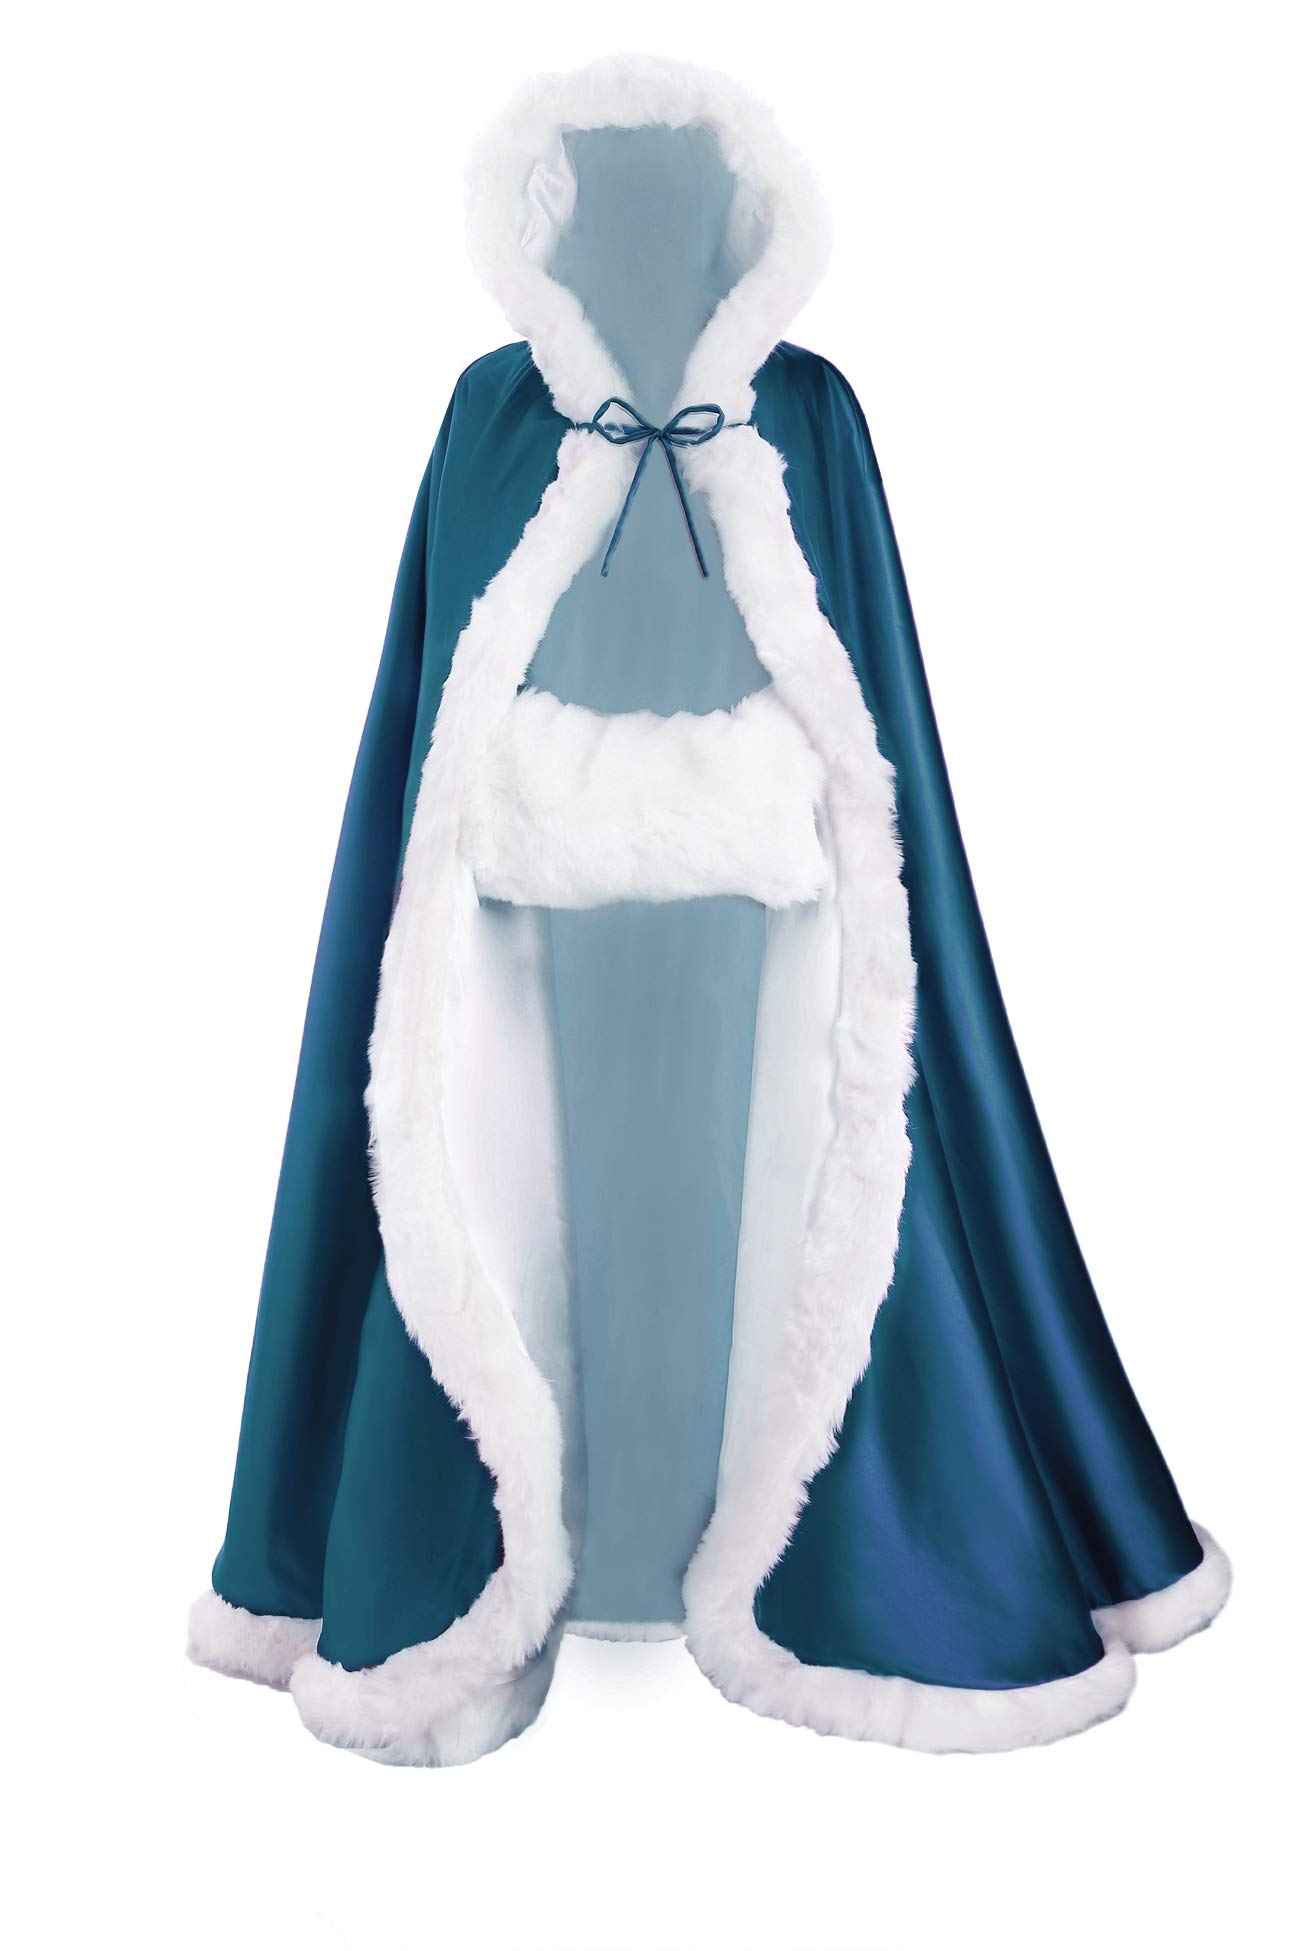 Wedding Cape Hooded Cloak for Bride Winter Reversible with Fur Trim Free Hand Muff Full Length 50 55 inches (19 Colors) (Length:55'', Peacock Blue) by BEAUTELICATE